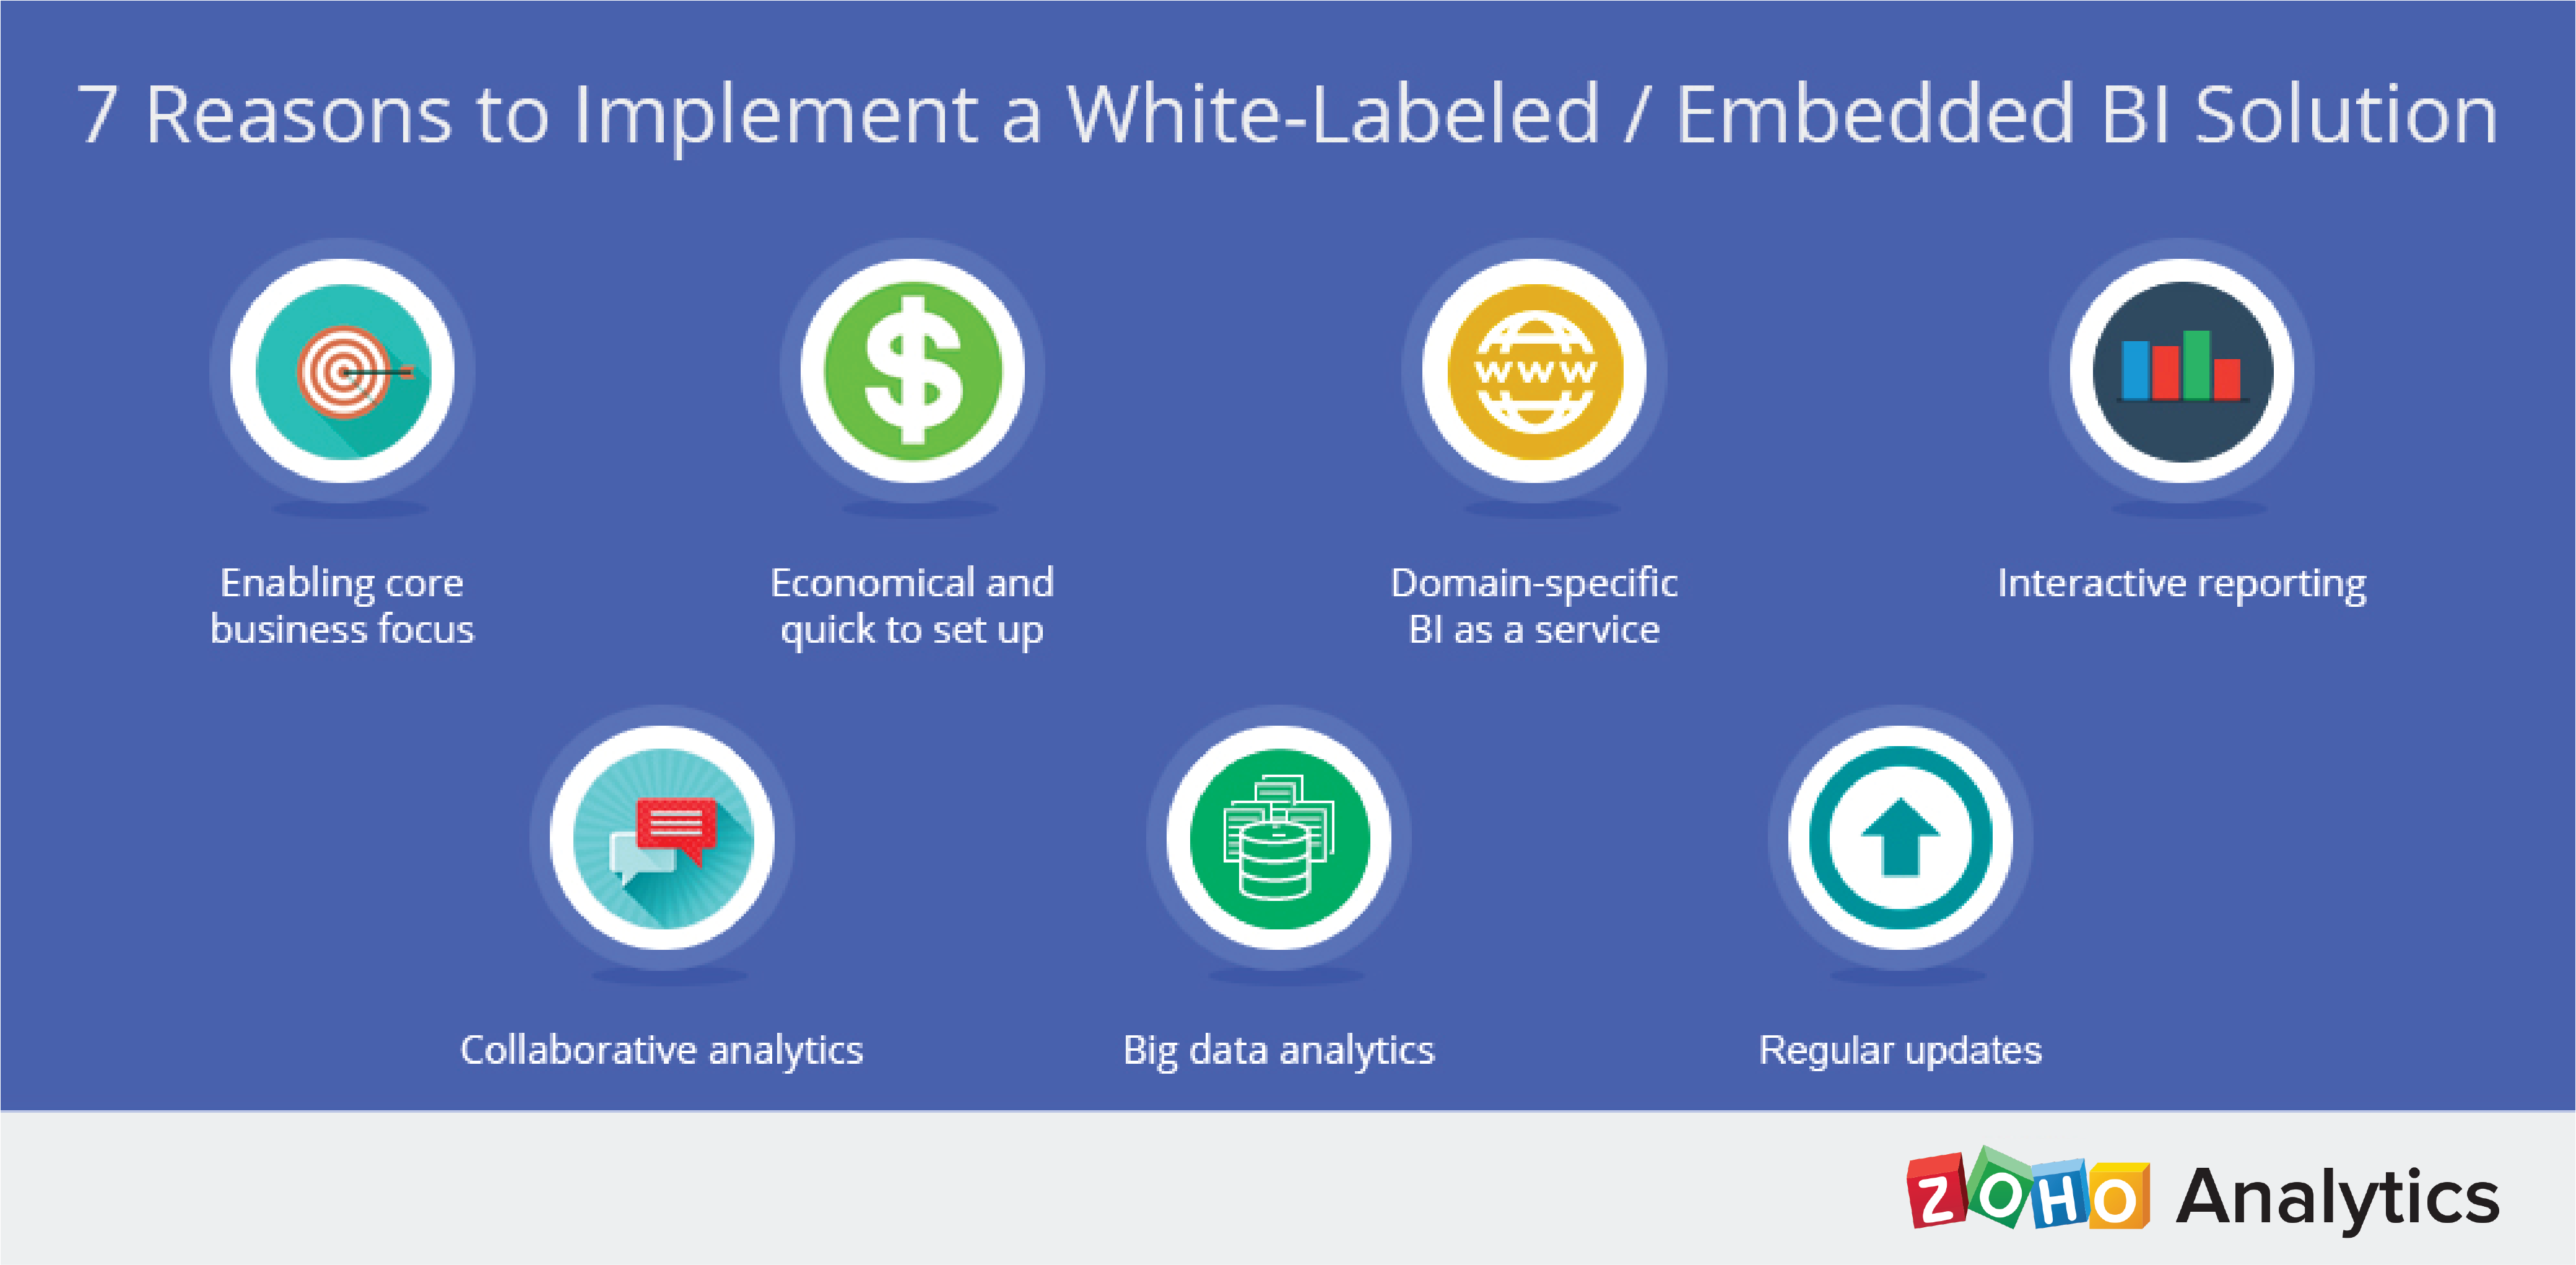 7 Reasons to Implement a Embedded Analytics Solution